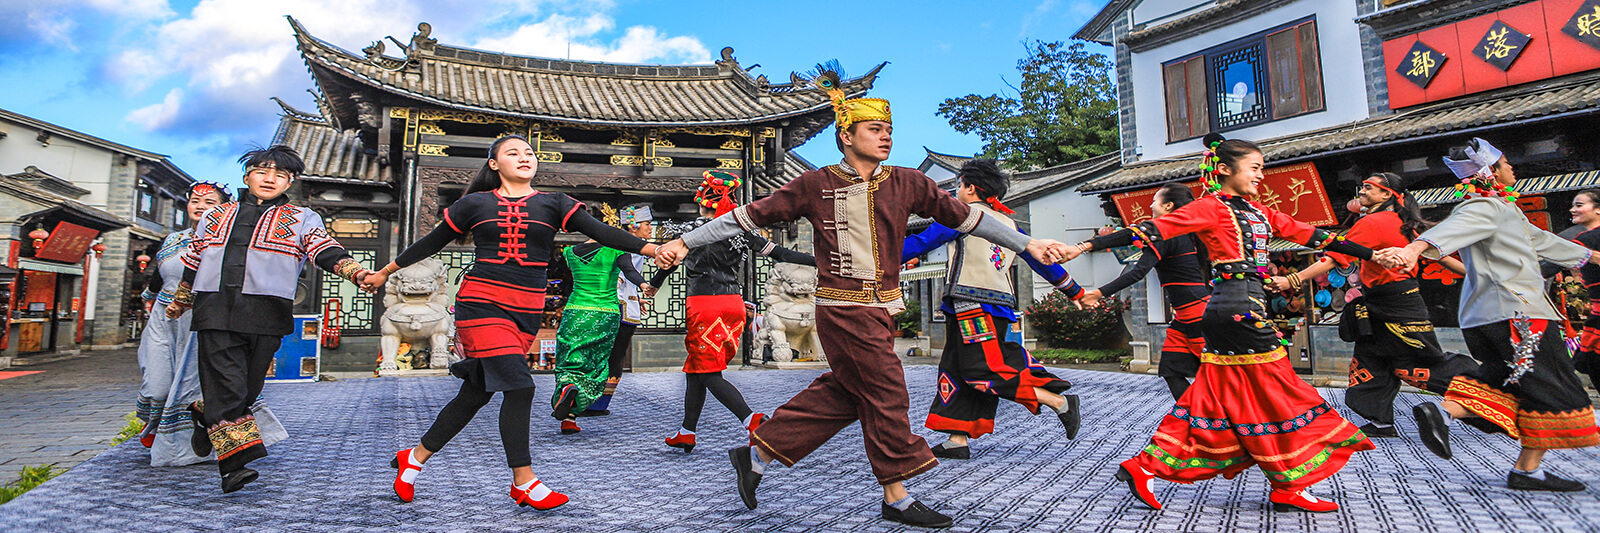 Yunnan Ethnic Village in China